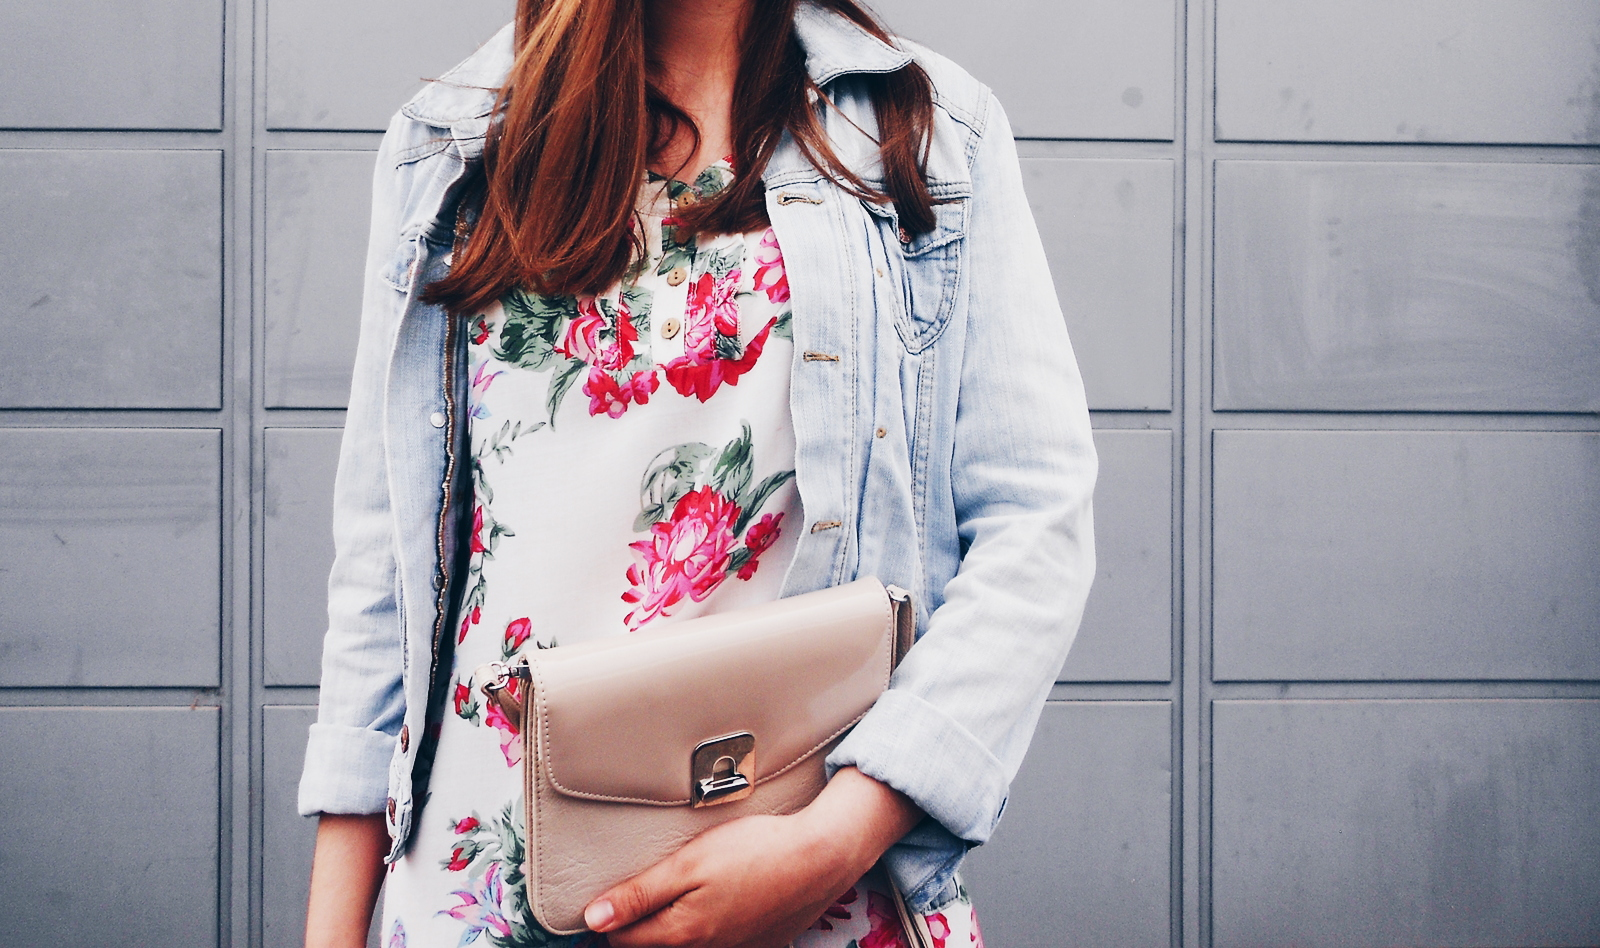 outfit | Where flowers boom, so does hope